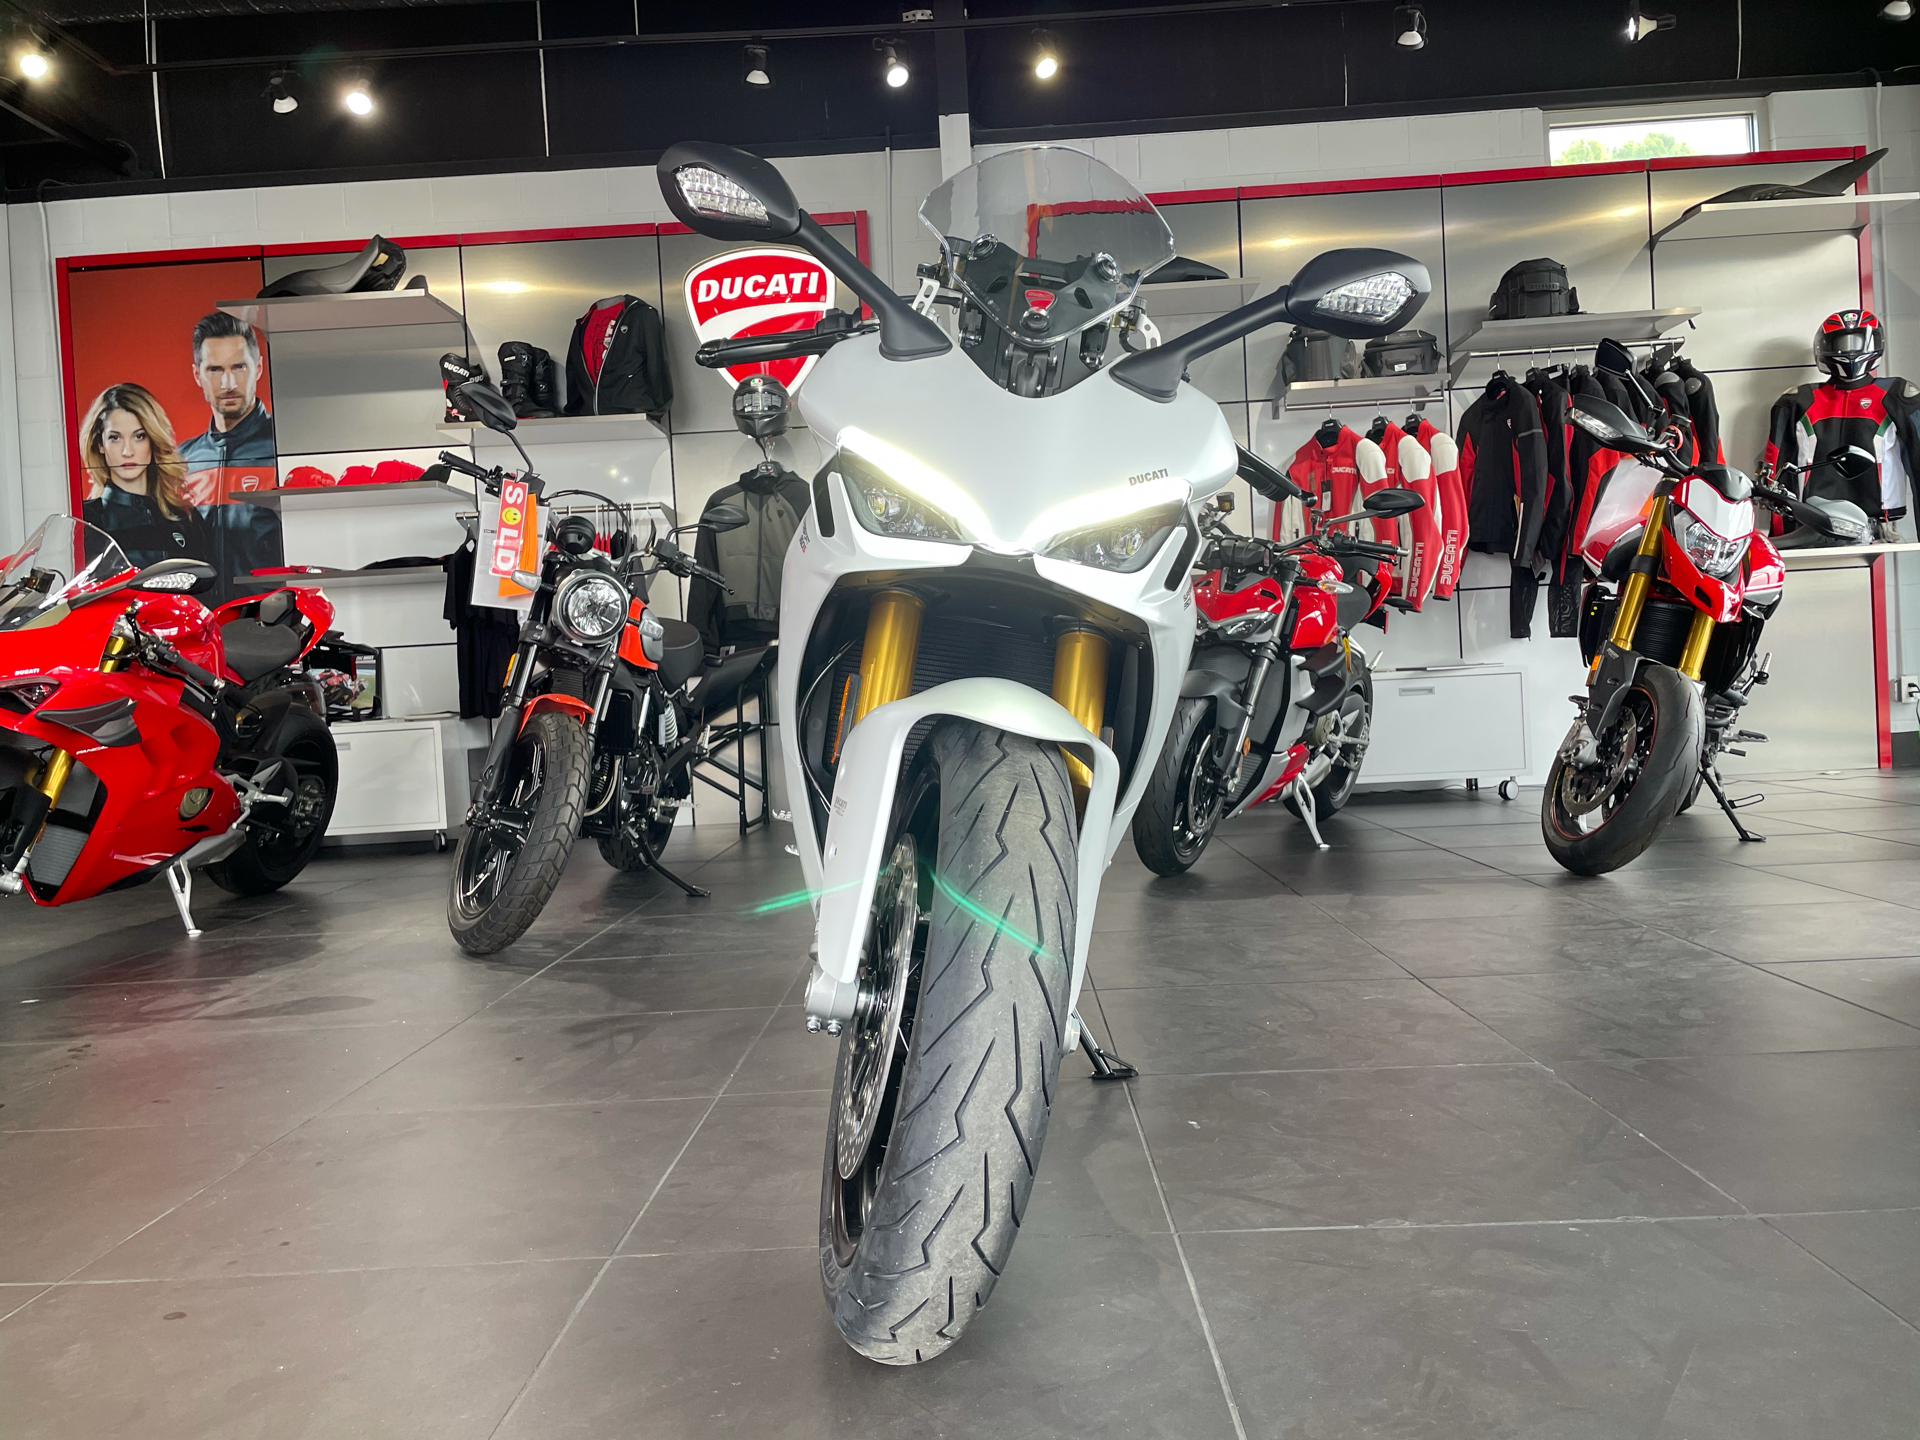 2021 Ducati SuperSport 950 S in Greenville, South Carolina - Photo 3